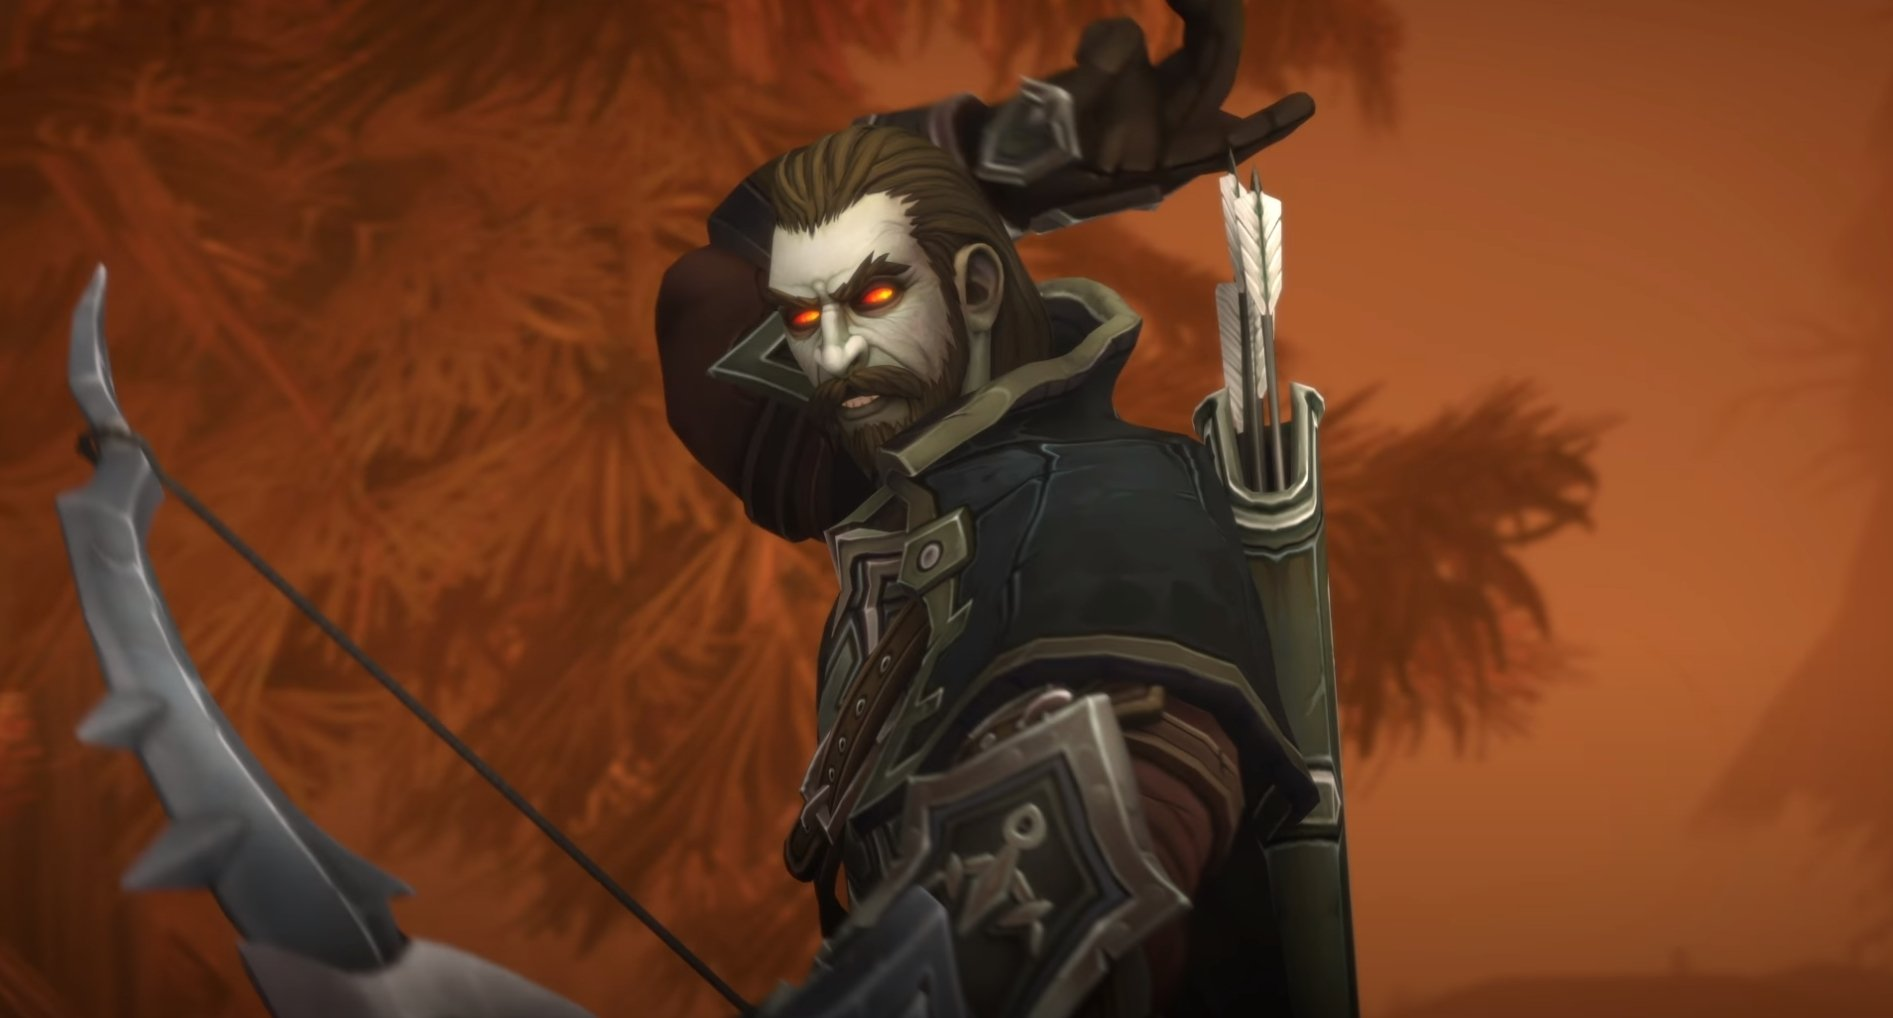 World Of Warcraft: Shadowlands Scourge Invasion Event Reveals Fate Of Nathanos Blightcaller (Spoilers!)